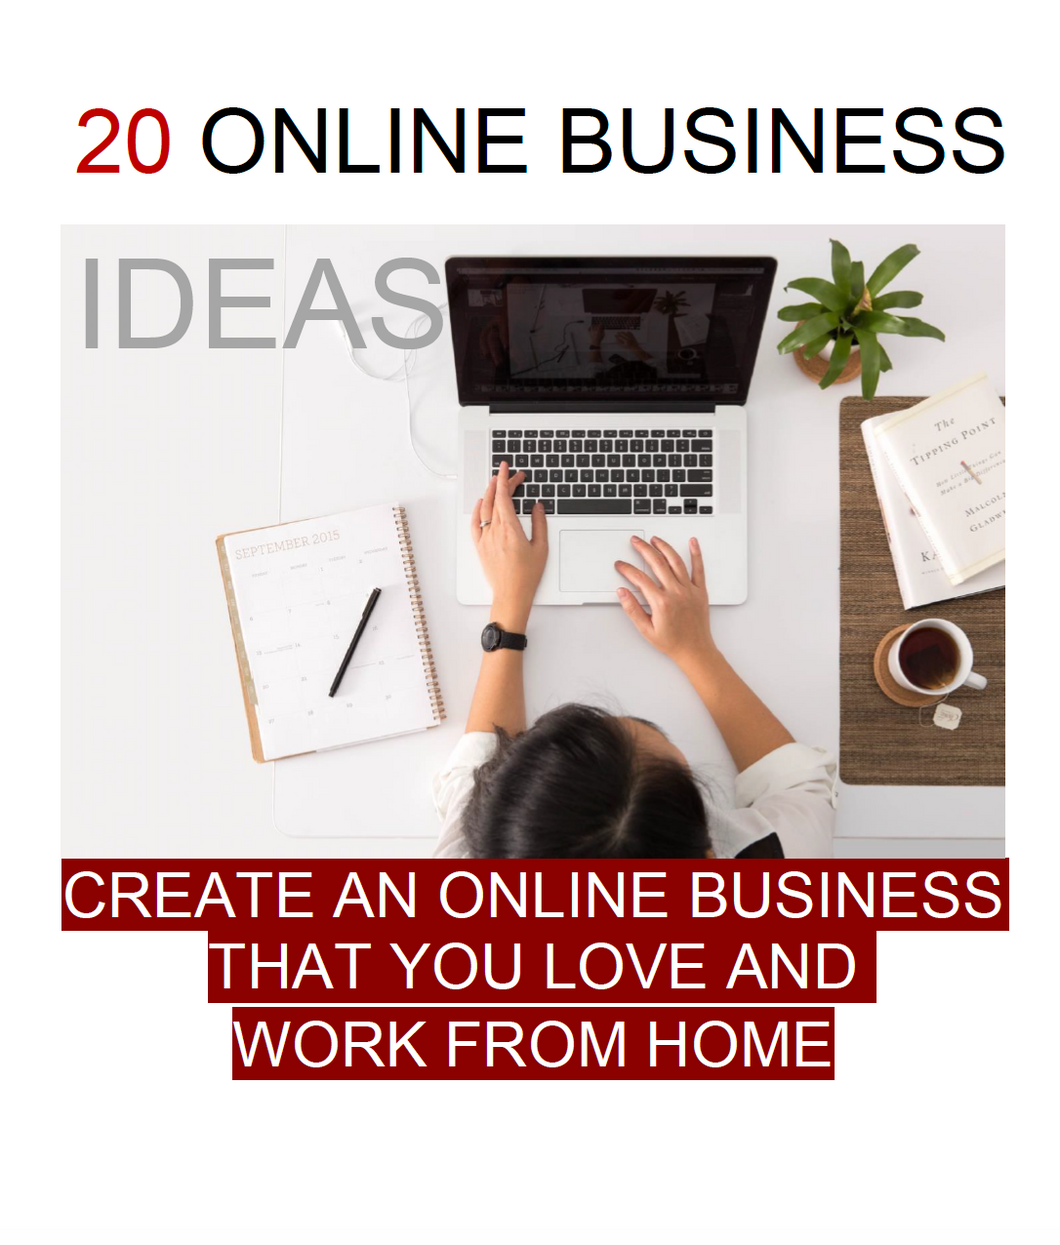 20 Online Business Ideas (FREE!)